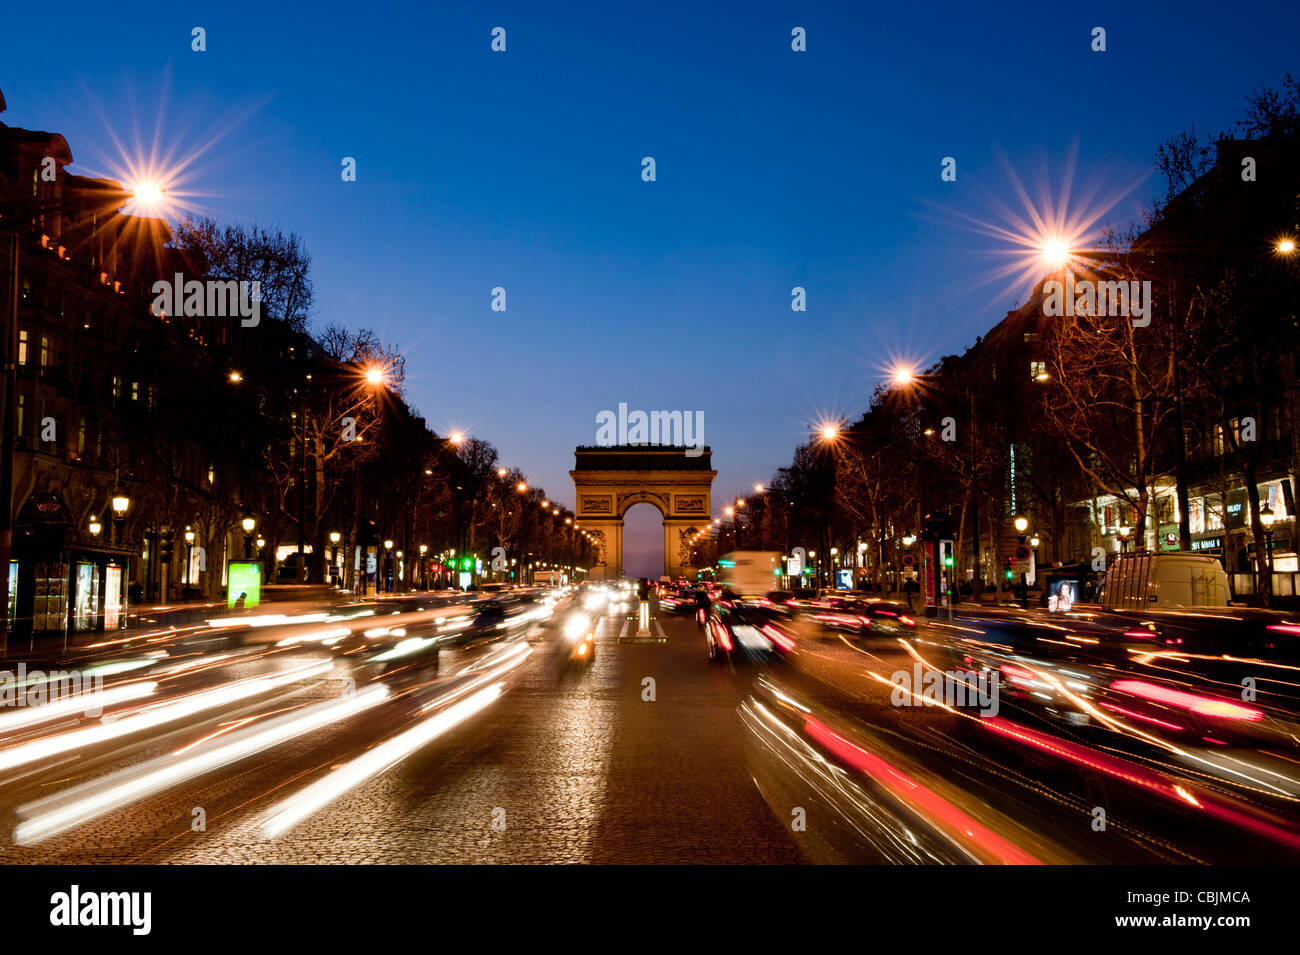 A wide-angle view Arc de Triomphe from Champs Elysees during evening, featuring light trails from traffic. - Stock Image